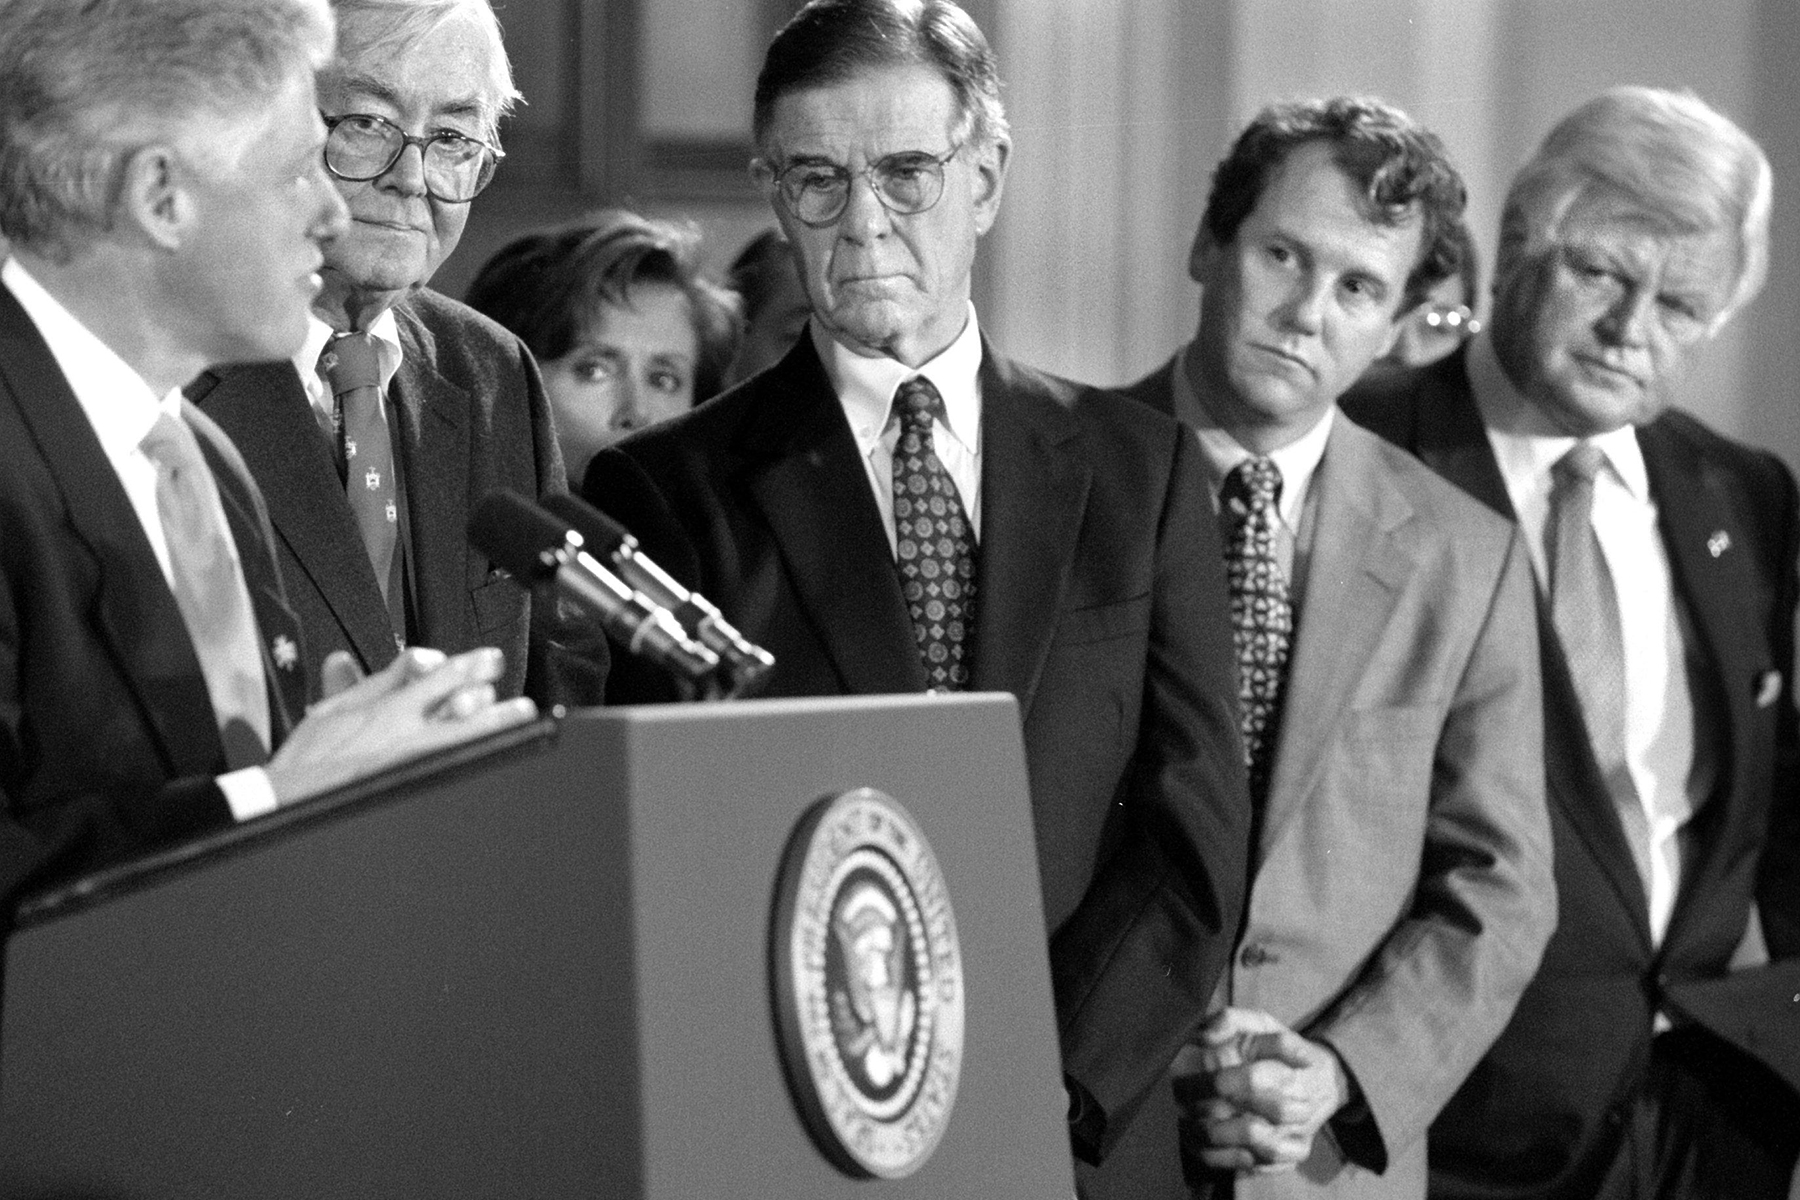 NA/Clinton 3/17/98 by Dayna Smith TWP Democrats listen intently as President Clinton describes an initiative giving Americans ages 55 to 65 new health insurance options on Capitol Hill. Left to right are: Sen. Pat Moynihan D-NY; Rep. Pete Stark, D-CA; Rep. Sherrod Brown D-OH; and Sen. Edward Kennedy D-MA. (Photo by Dayna Smith/The The Washington Post via Getty Images)